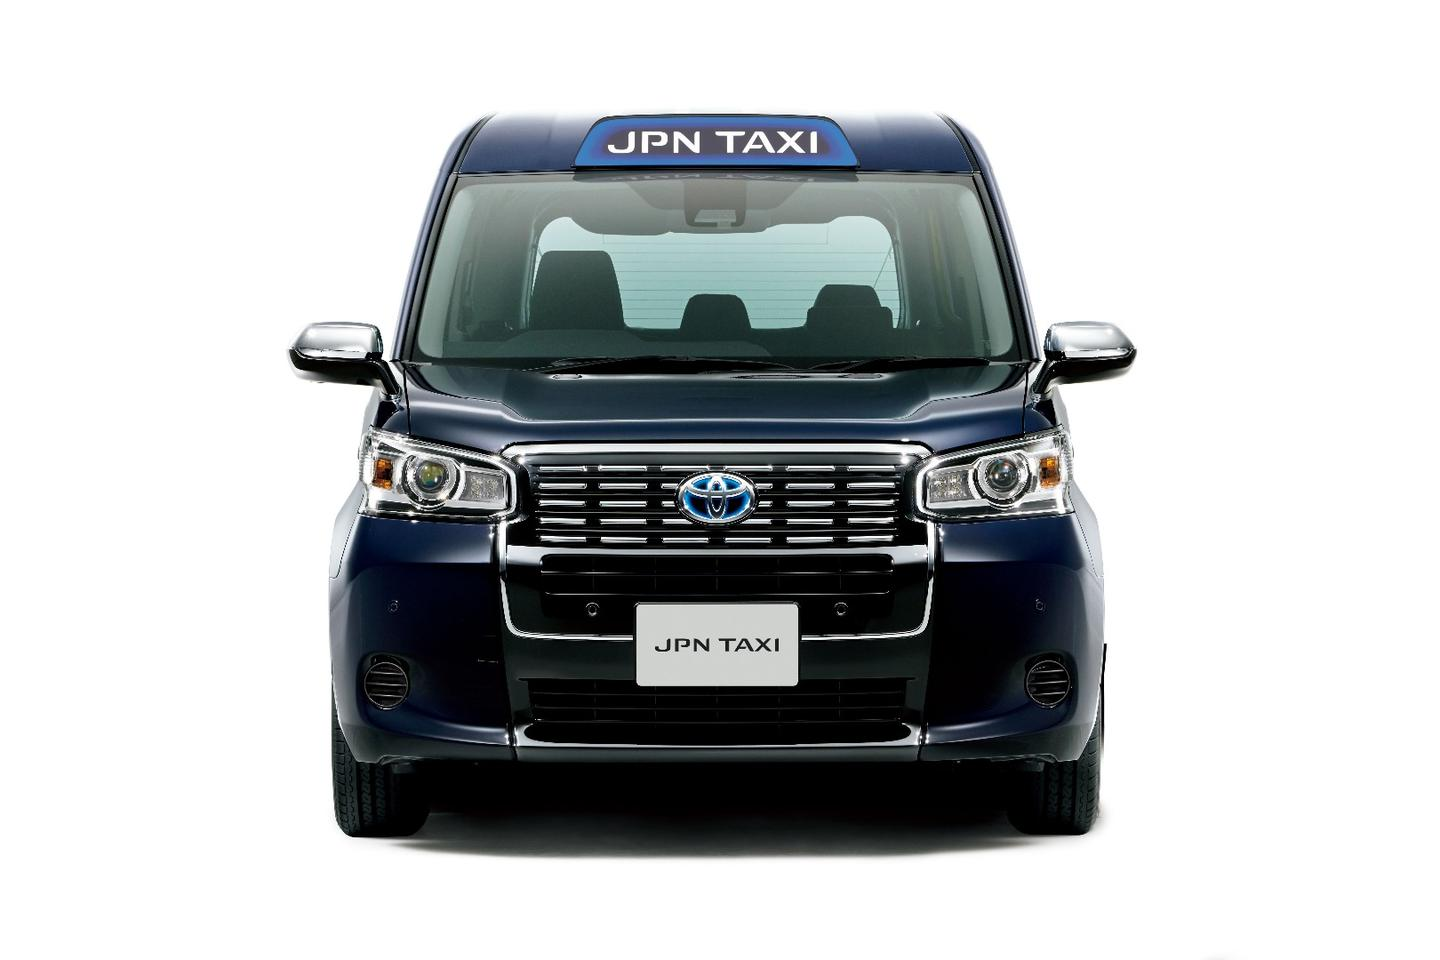 The Toyota JPNTaxi has been revamped for the new model offering